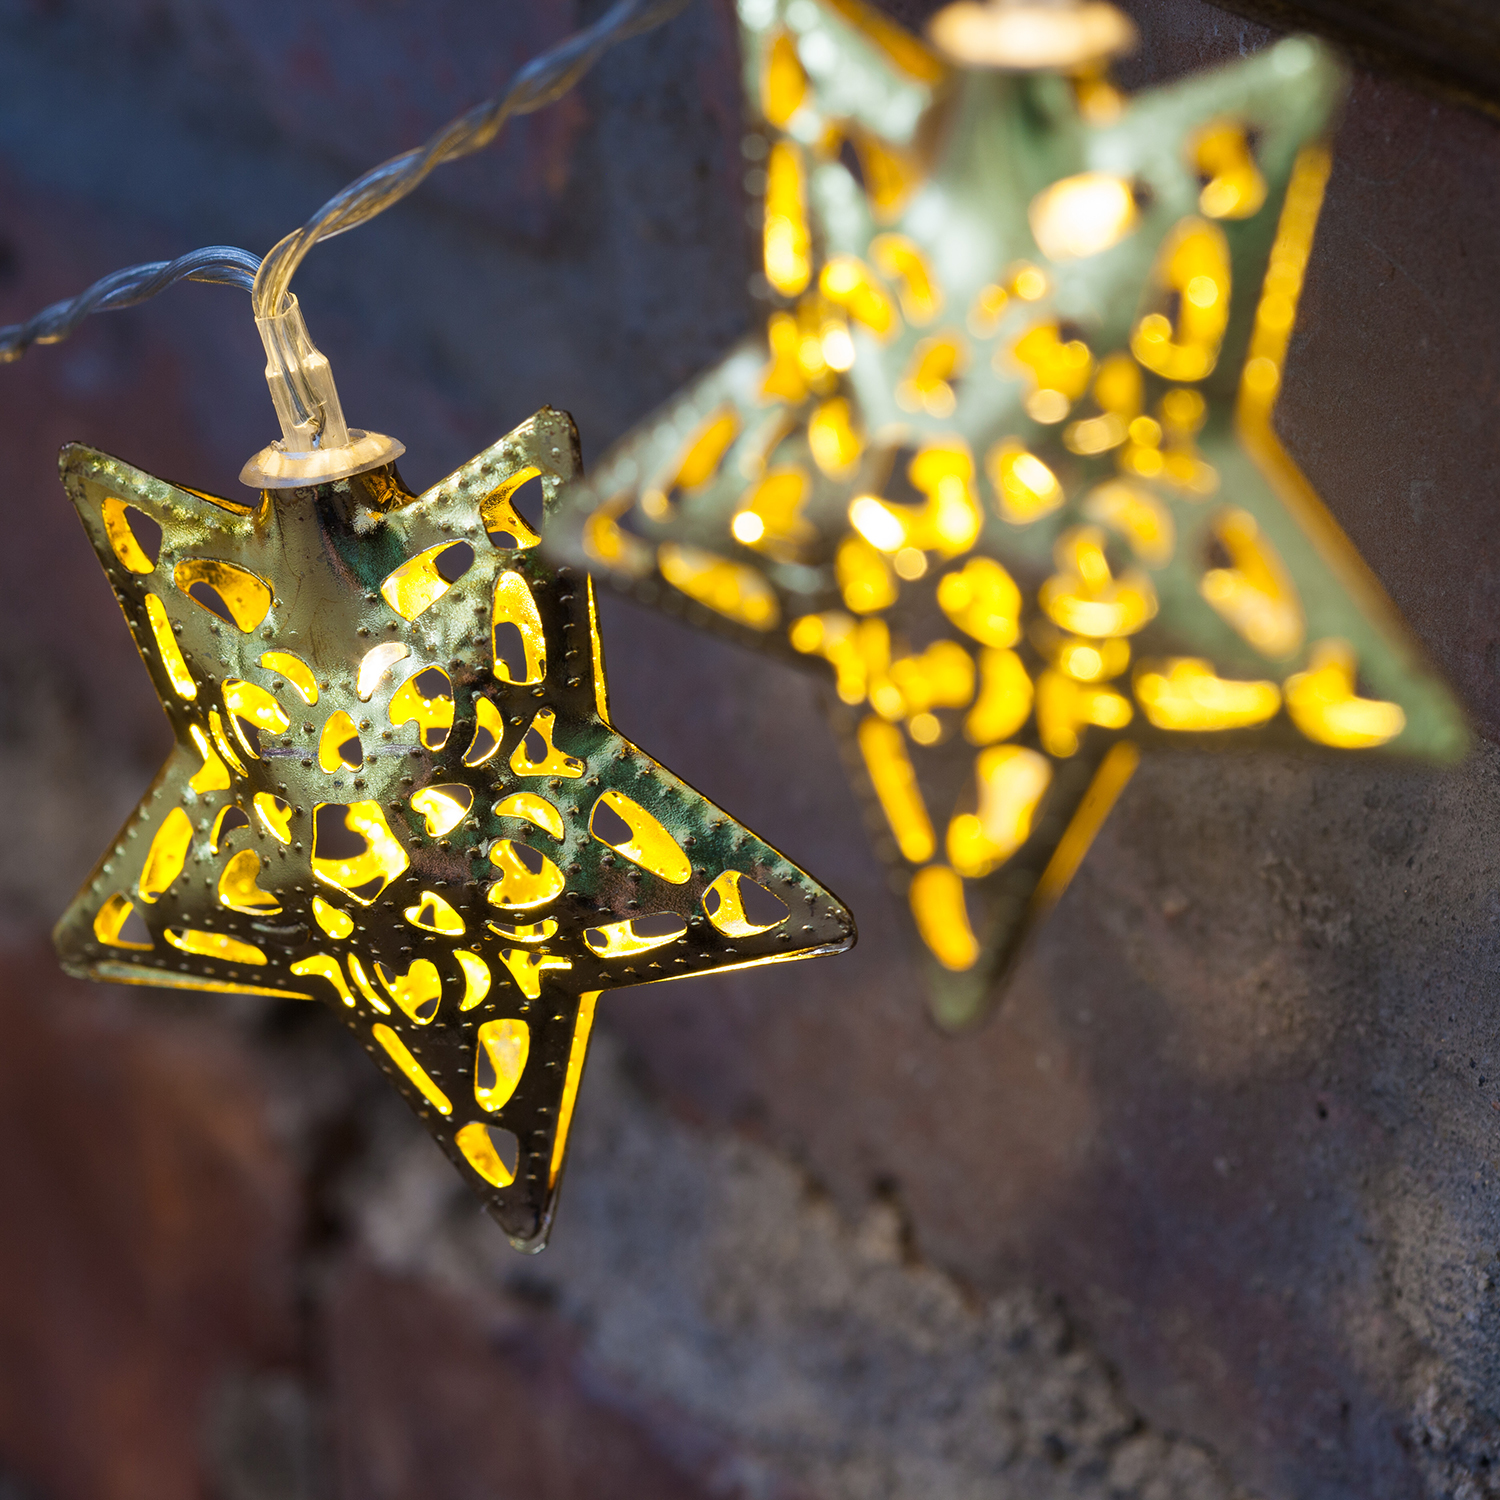 Metal Star String Lights : Events, Promotions and Inspirations from Lights.com